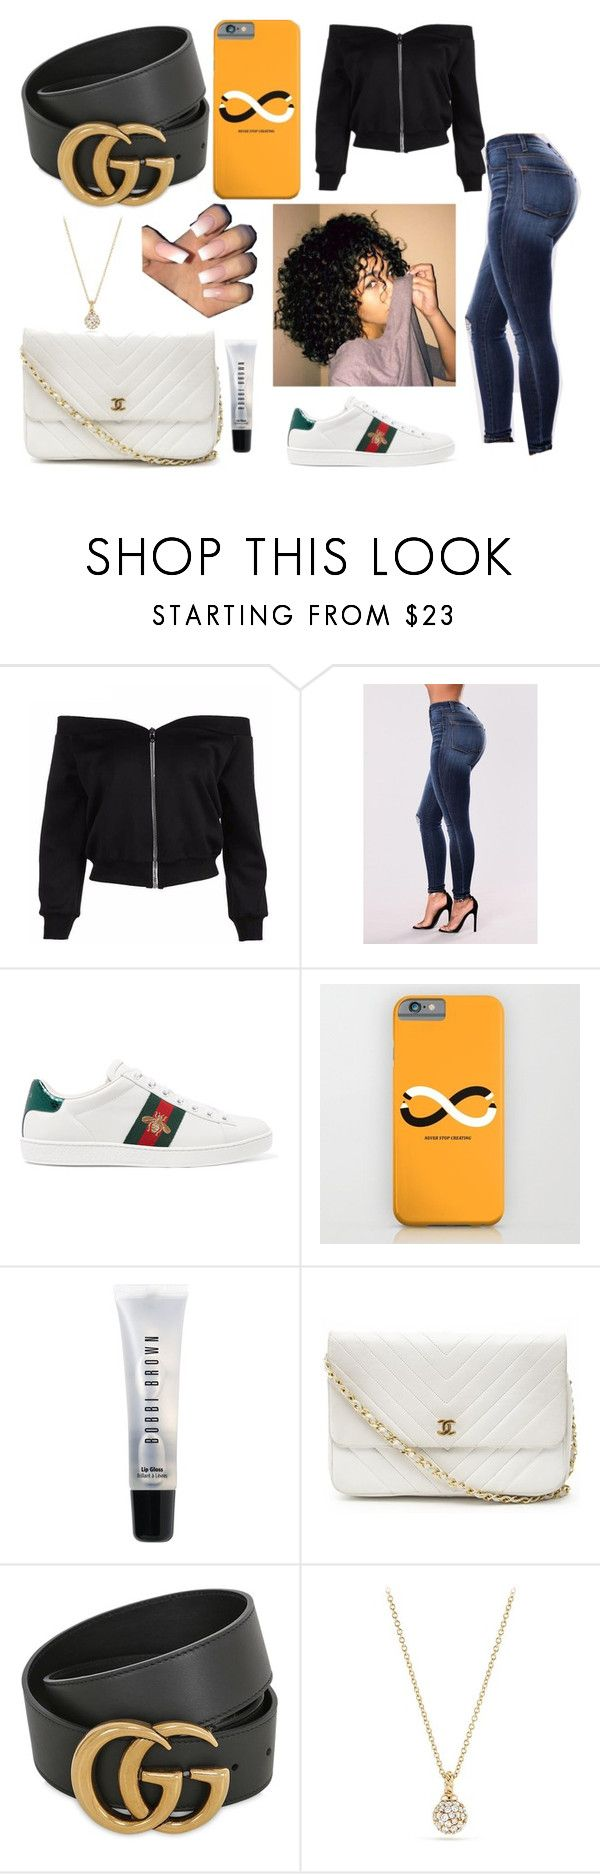 """""""Untitled #148"""" by bvbydest on Polyvore featuring Gucci, Bobbi Brown Cosmetics, Chanel and David Yurman"""